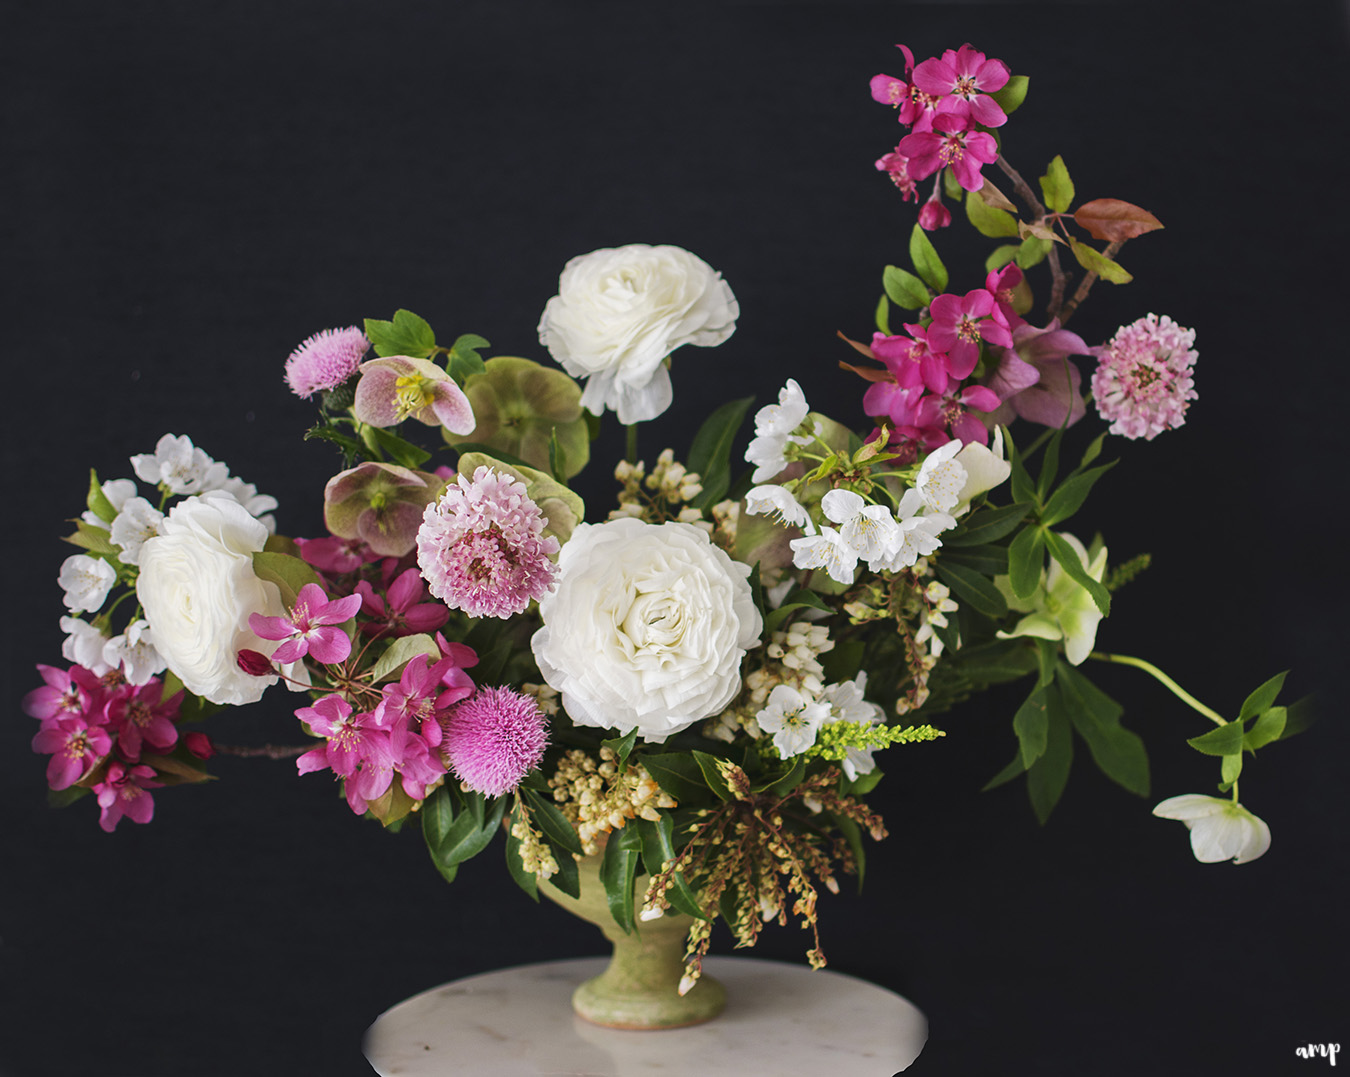 Centerpiece with white and pink florals